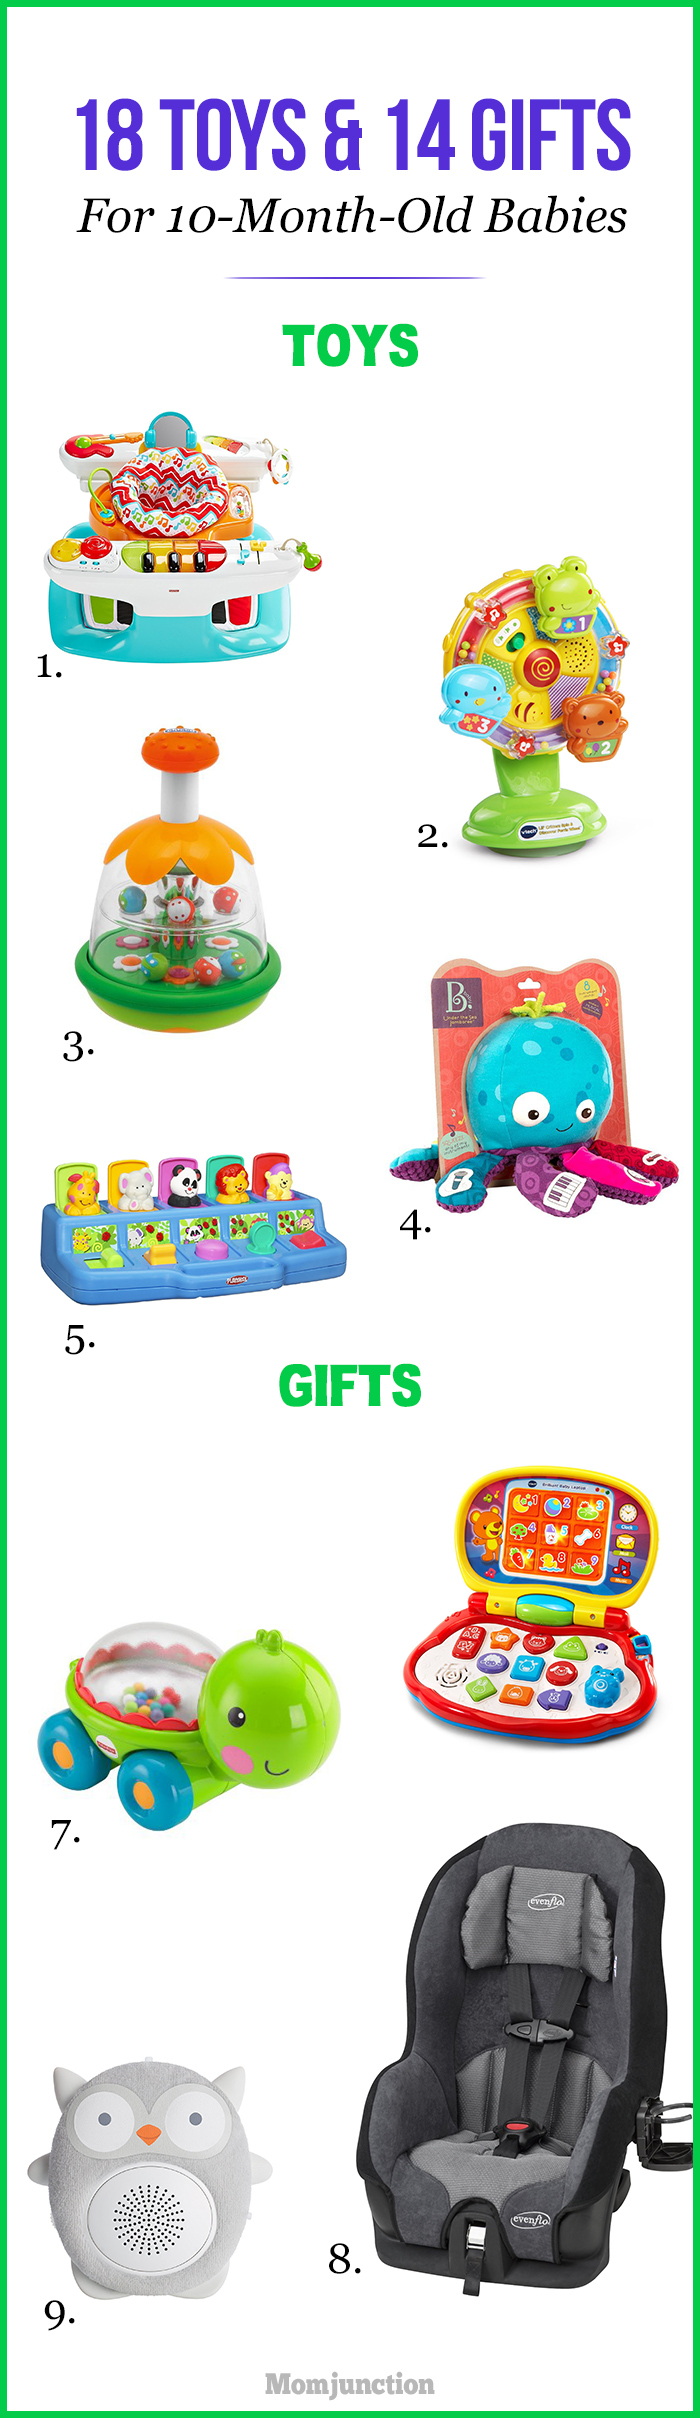 6 Month Old Baby Gifts Uk : Month baby gifts images for